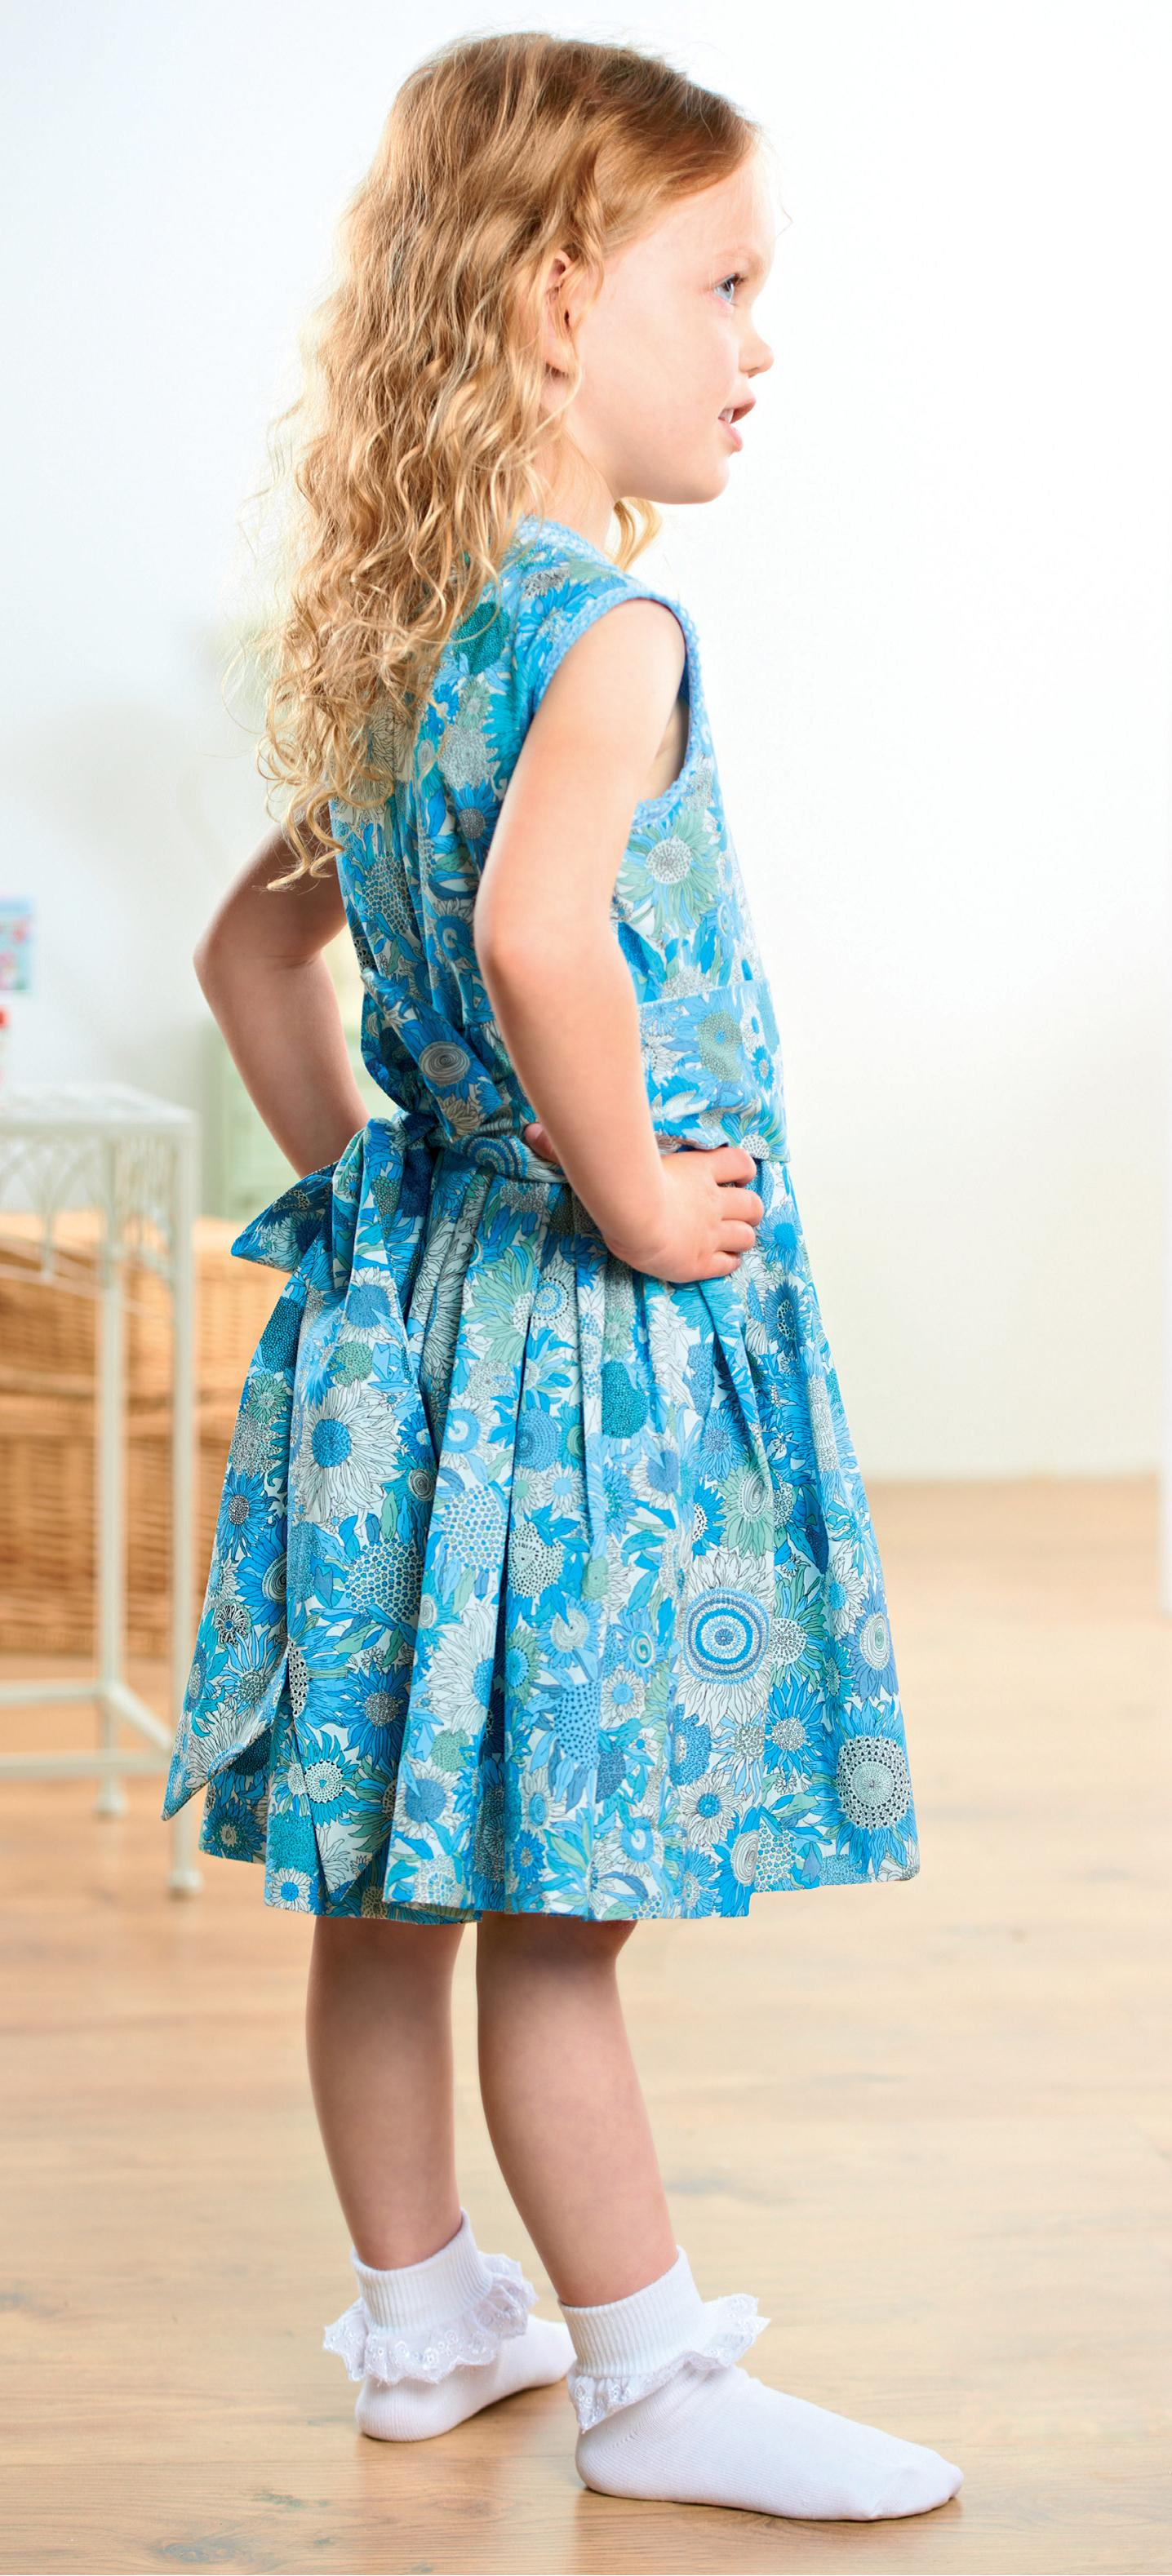 young girl's liberty party dresses  free sewing patterns